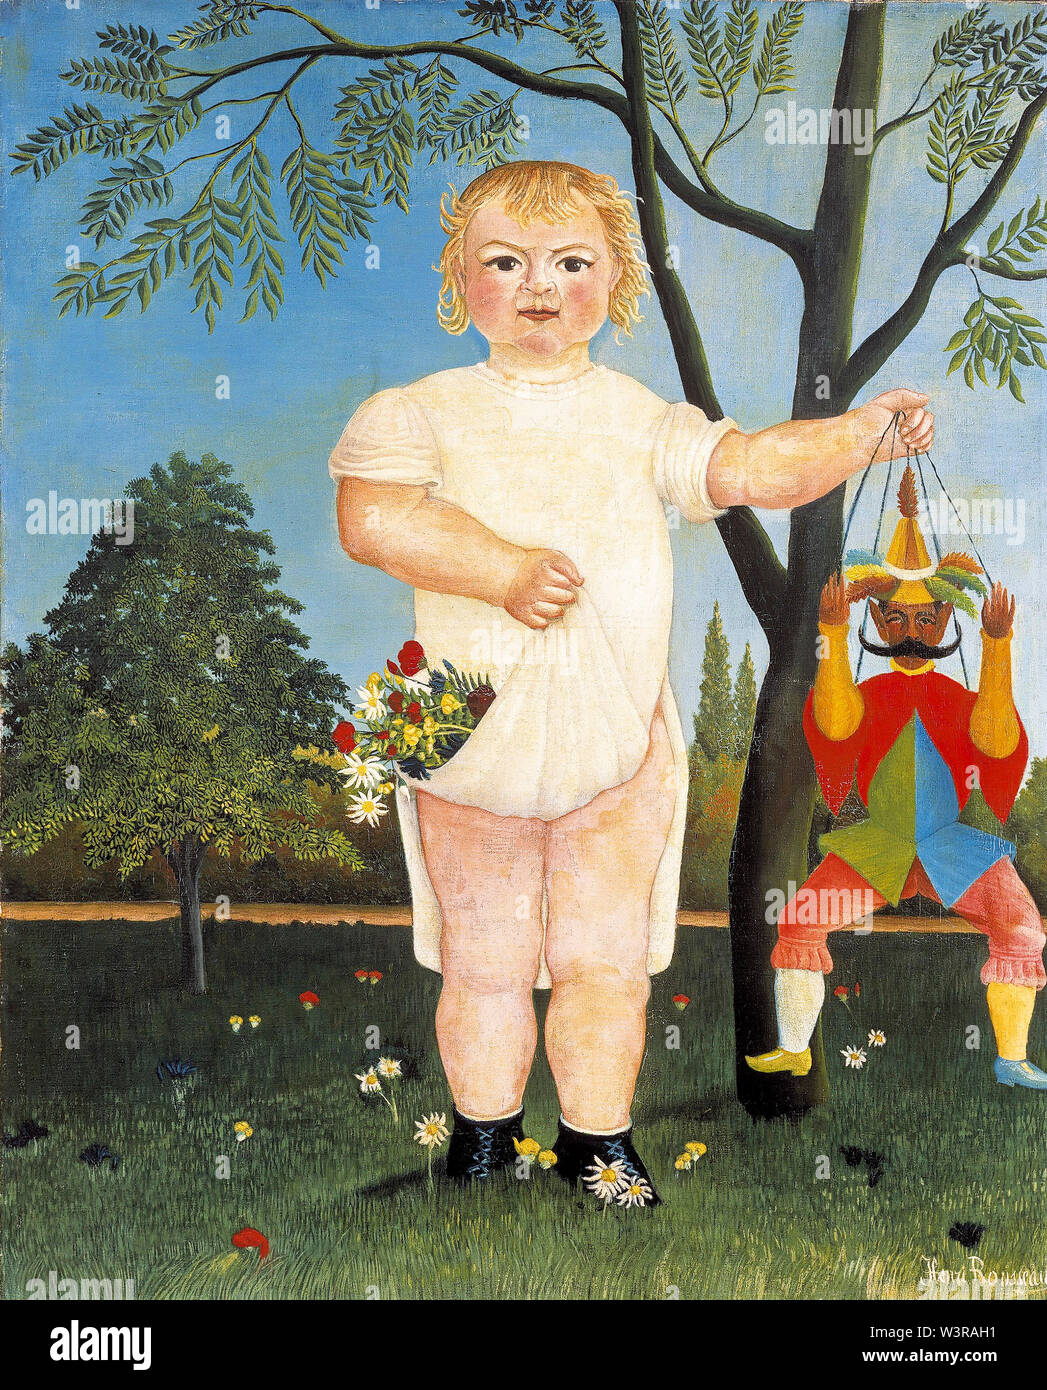 Henri Rousseau, Child with Marionette, Doll, or Puppet, painting, 1903 - Stock Image